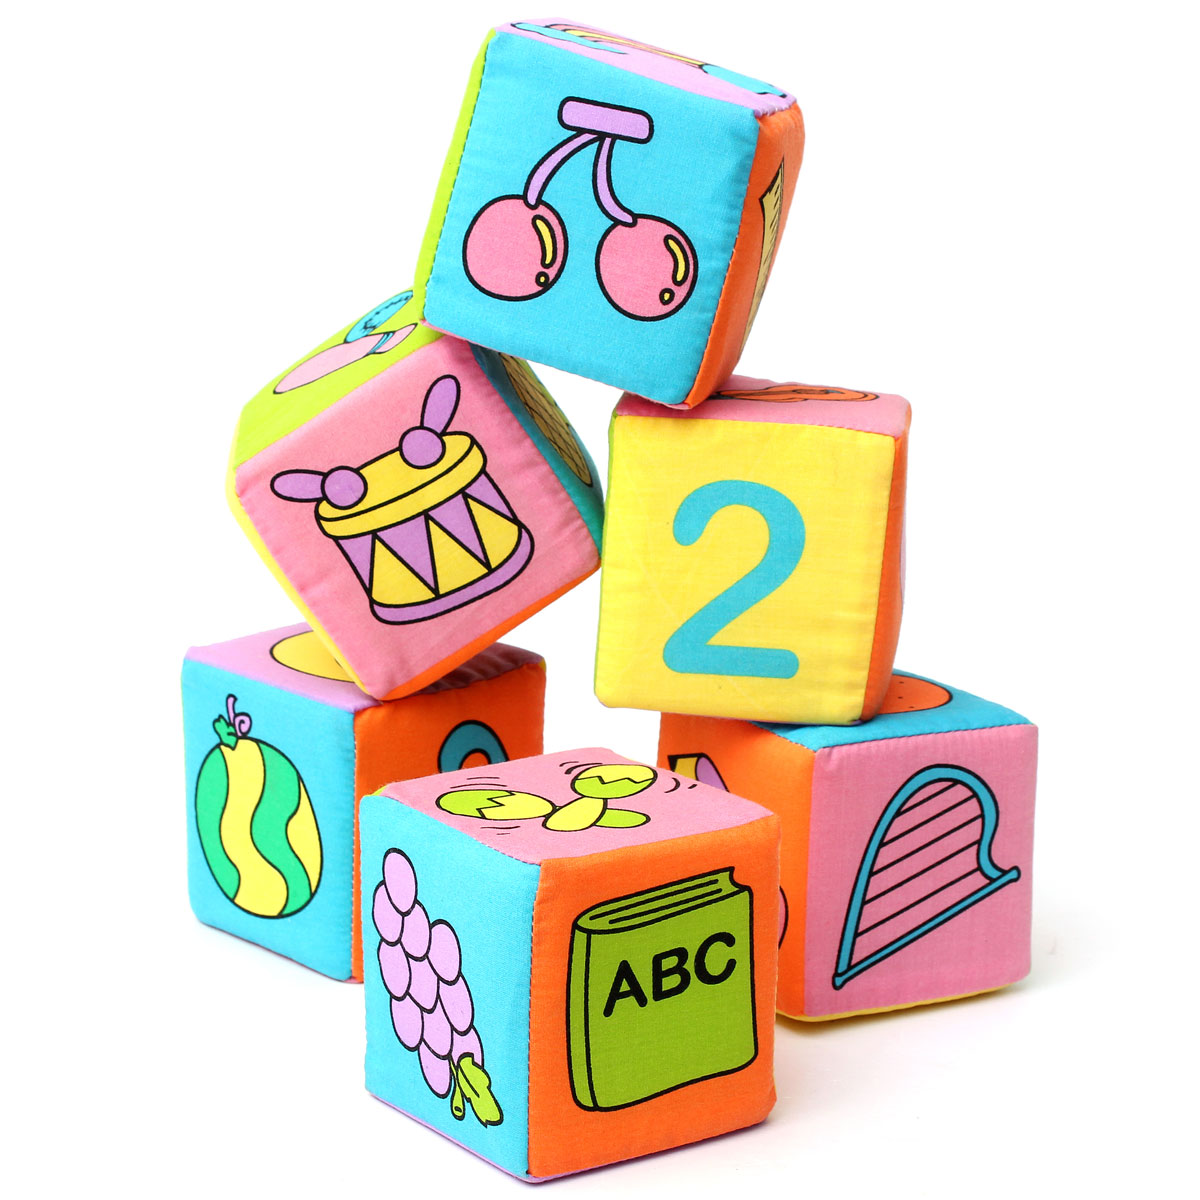 6pcs/set Cotton Baby Itty-Bitty Multifunctional Soft Magical Bell Rattle Blocks For Kids Learning And Educational Toys Gifts